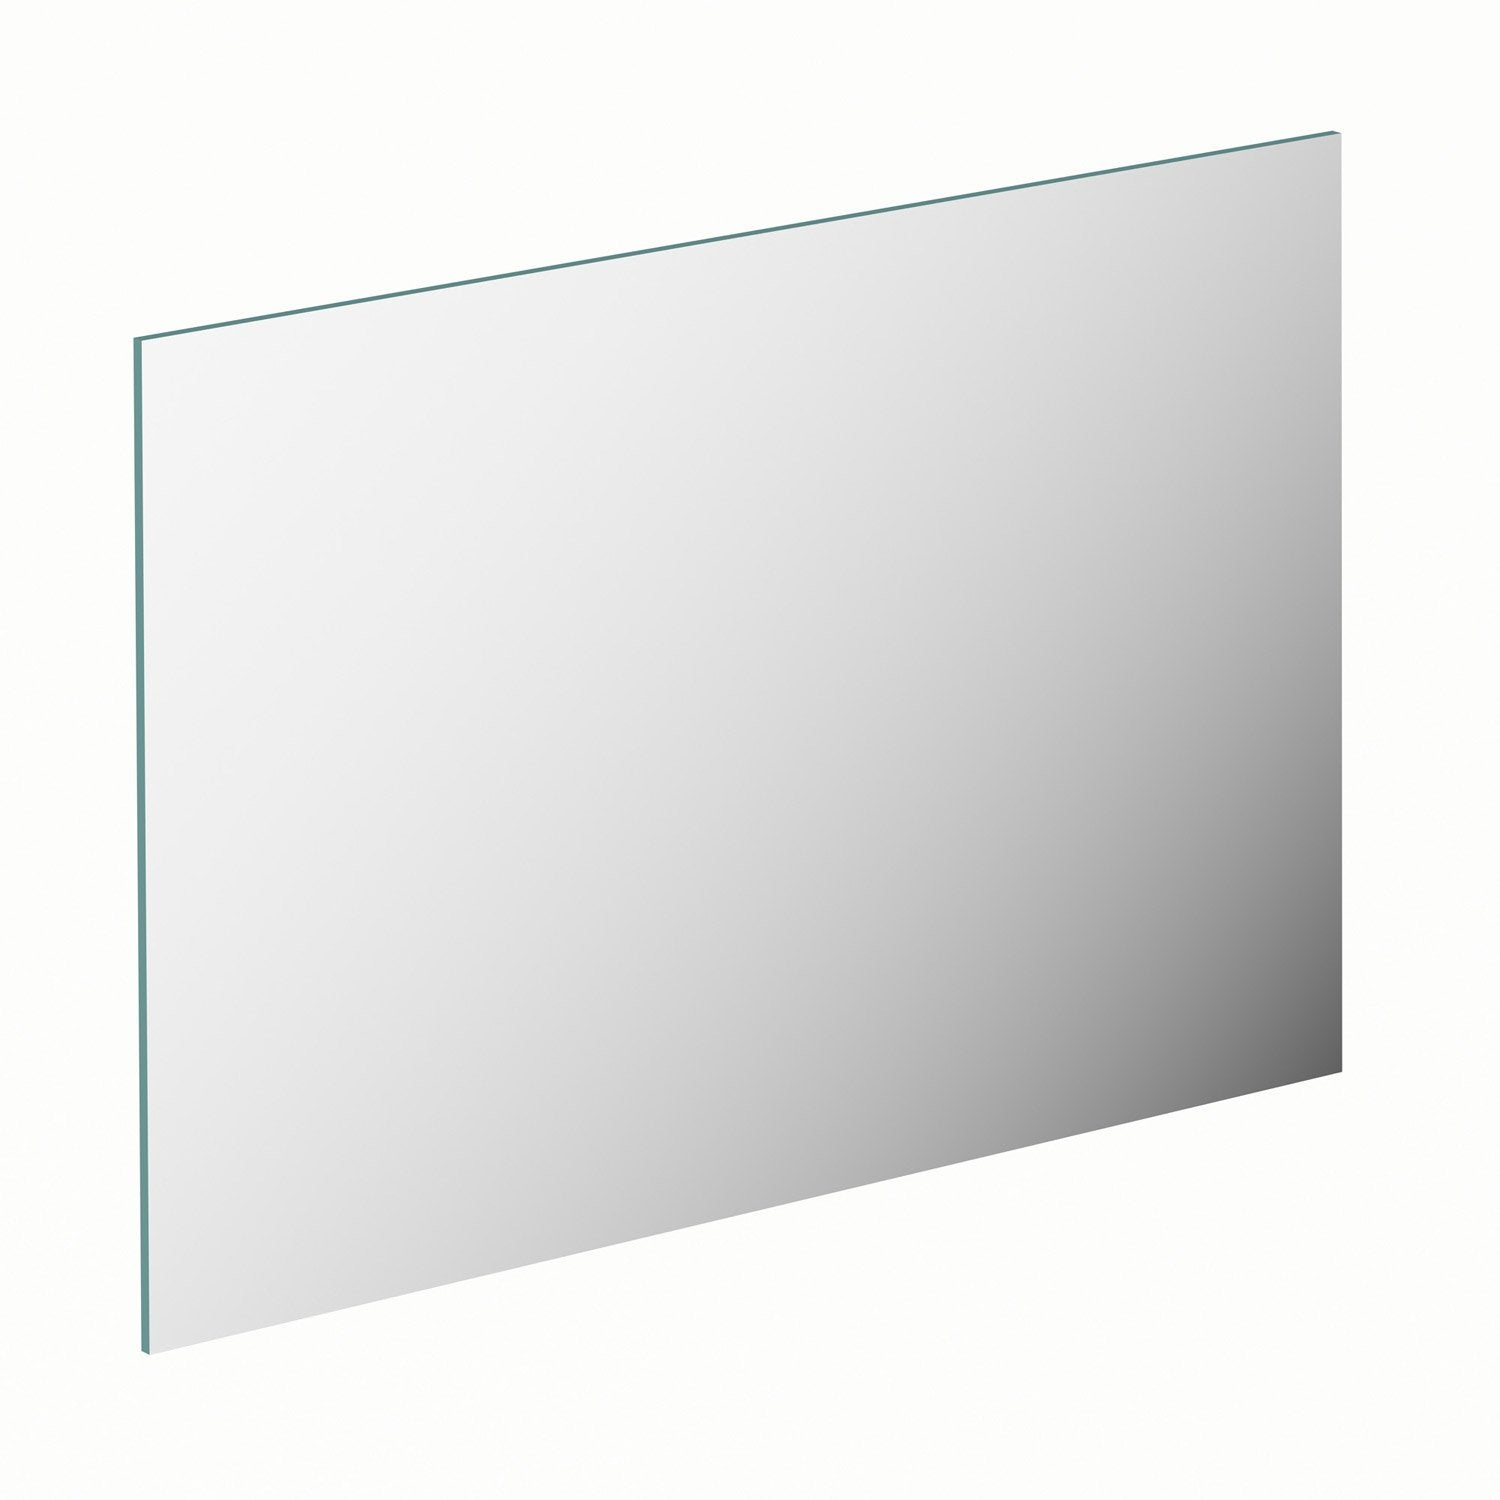 Panneau glossy miroir spaceo leroy merlin for Miroir decoratif leroy merlin